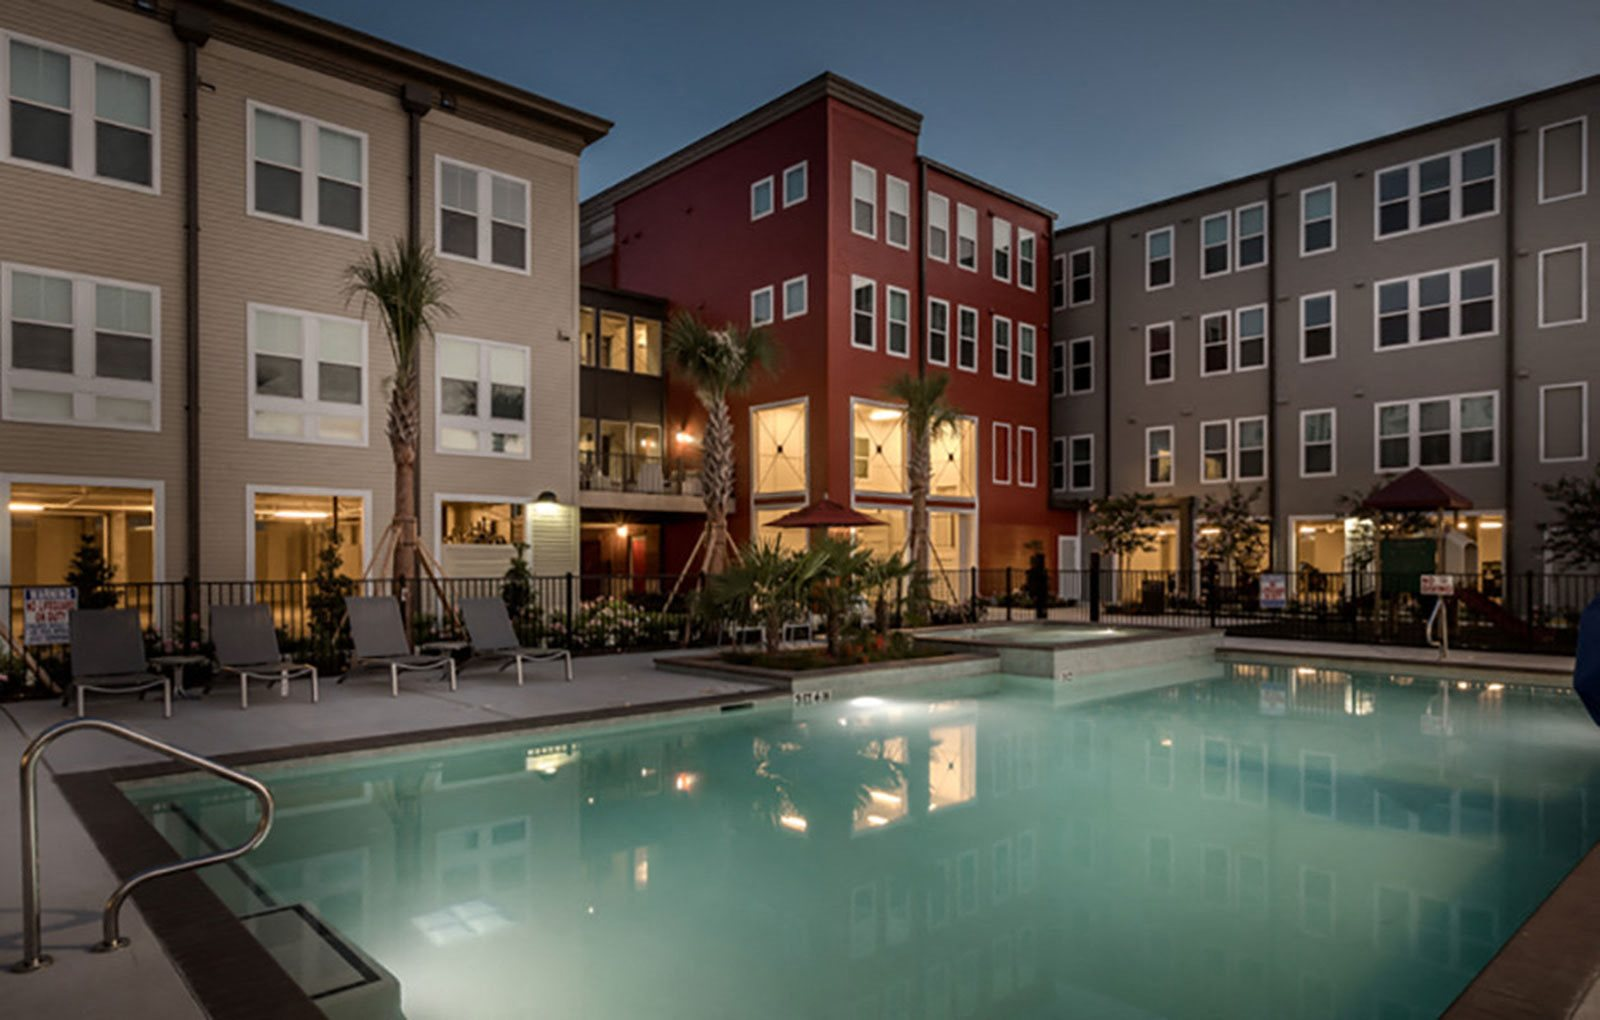 Outdoor swimming pool and pool area during dusk-Villas on the Strand, Galveston, TX 77550